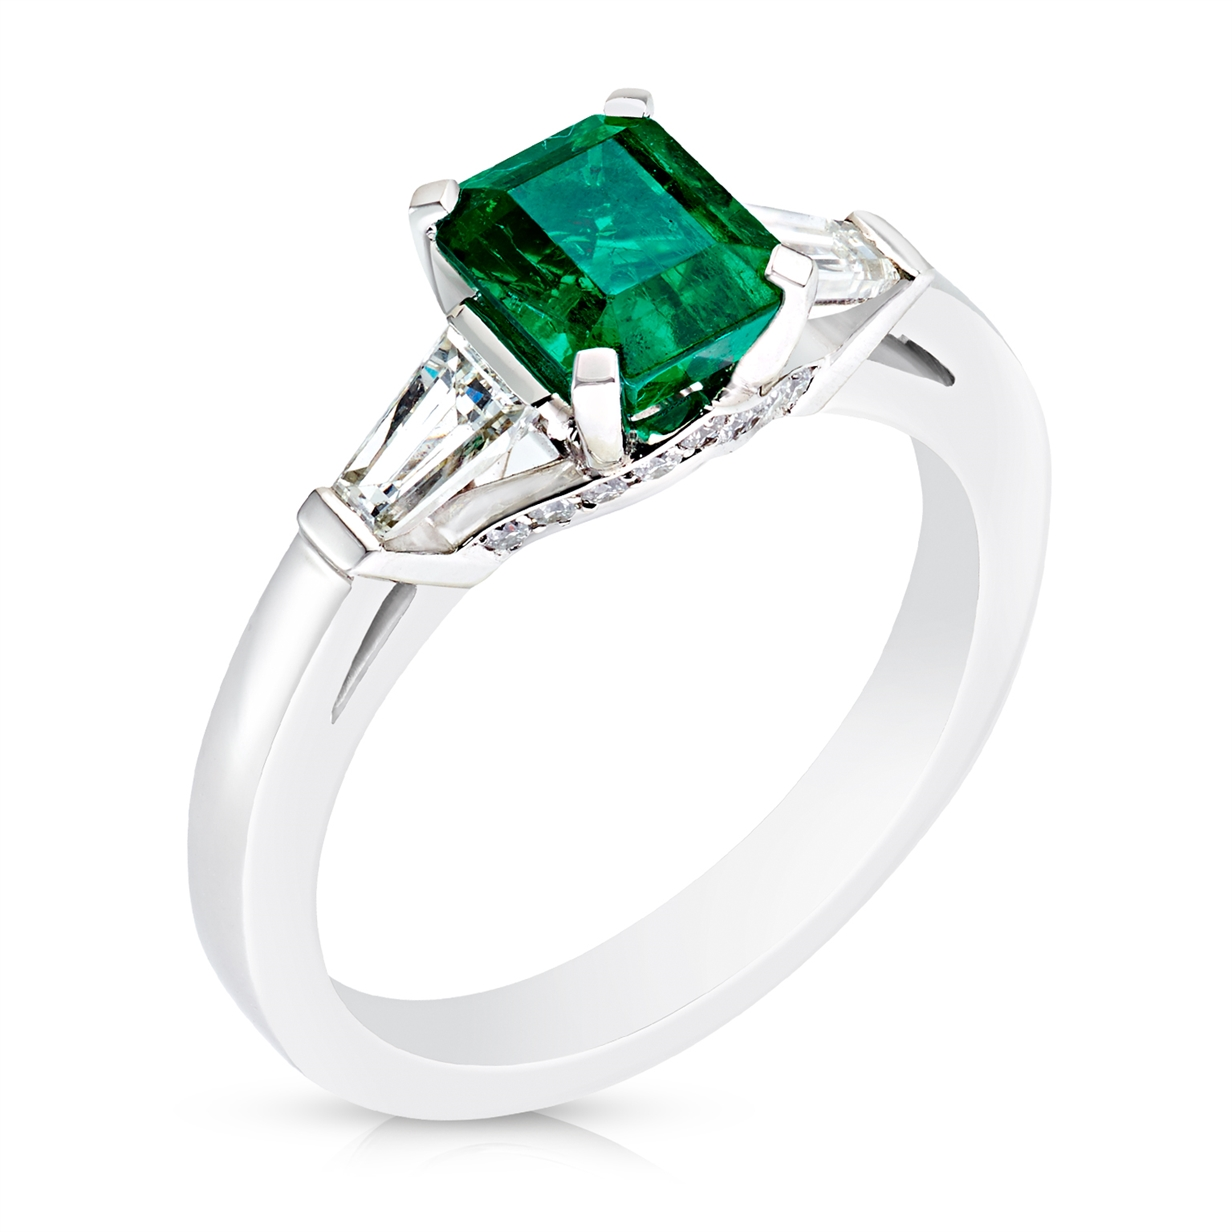 Platinum 1.16ct Emerald Cut Emerald Ring Set With Diamonds | Fabergé